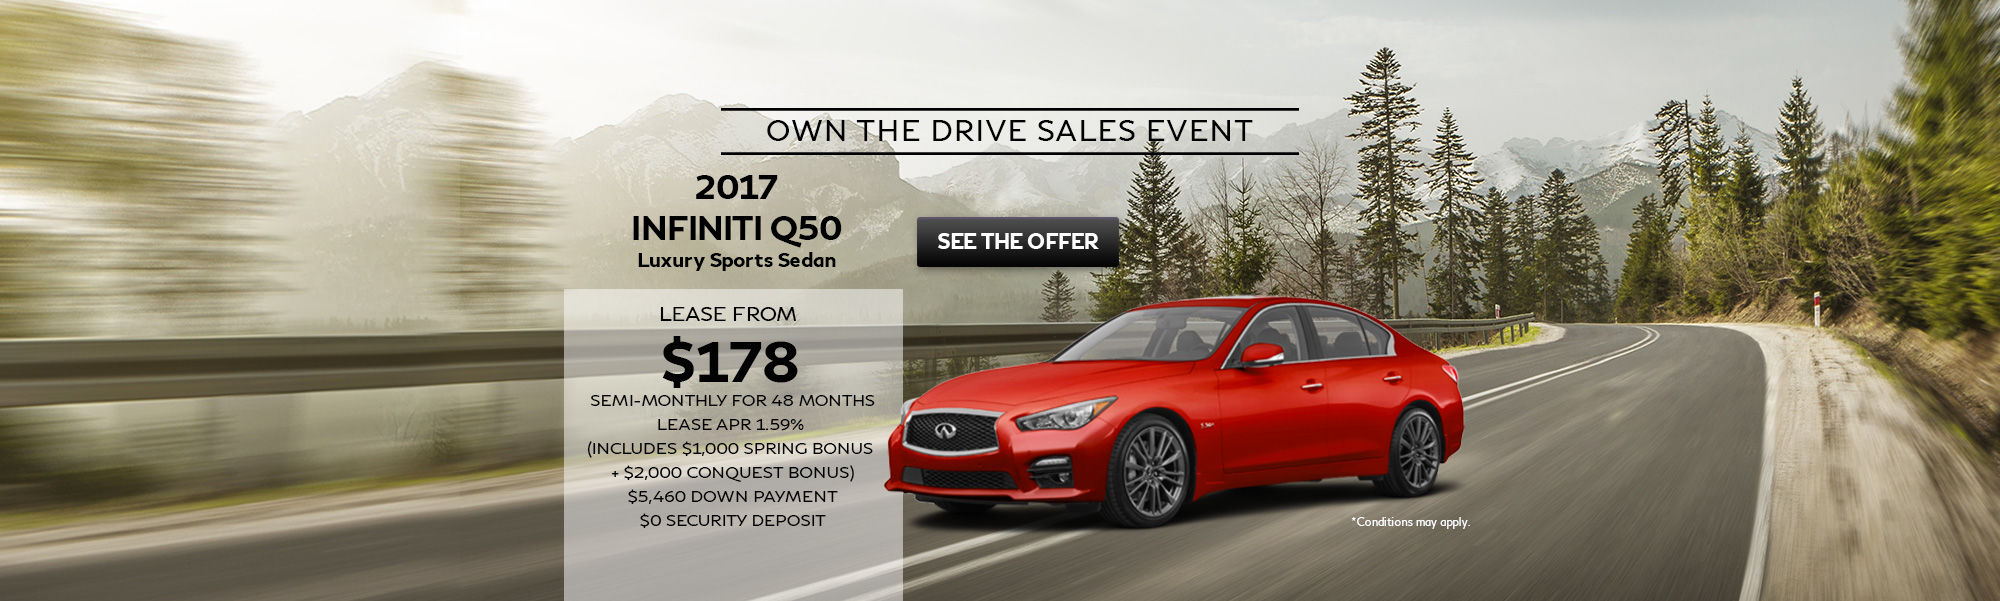 Own The Drive Sales Event Q50 Sedan